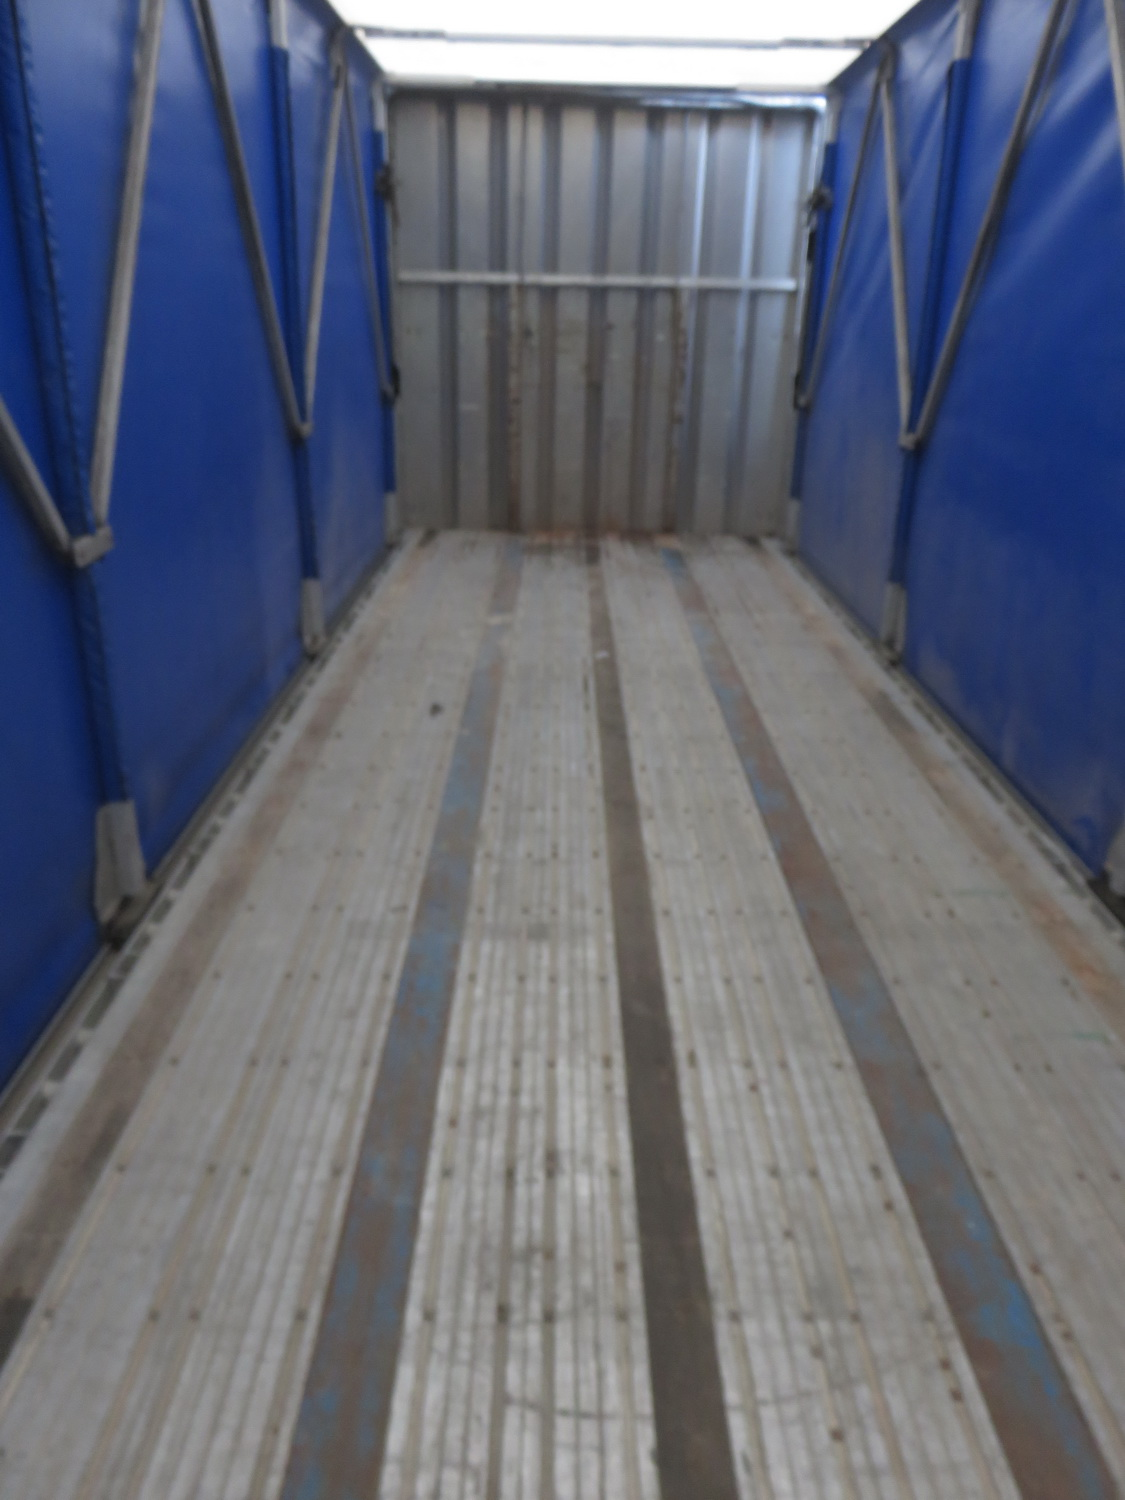 LODE KING 48' TANDEM AXLE BLUE CURTAIN SIDE TRAILER - S/N 2LDPA4829XC032084 - Image 3 of 6